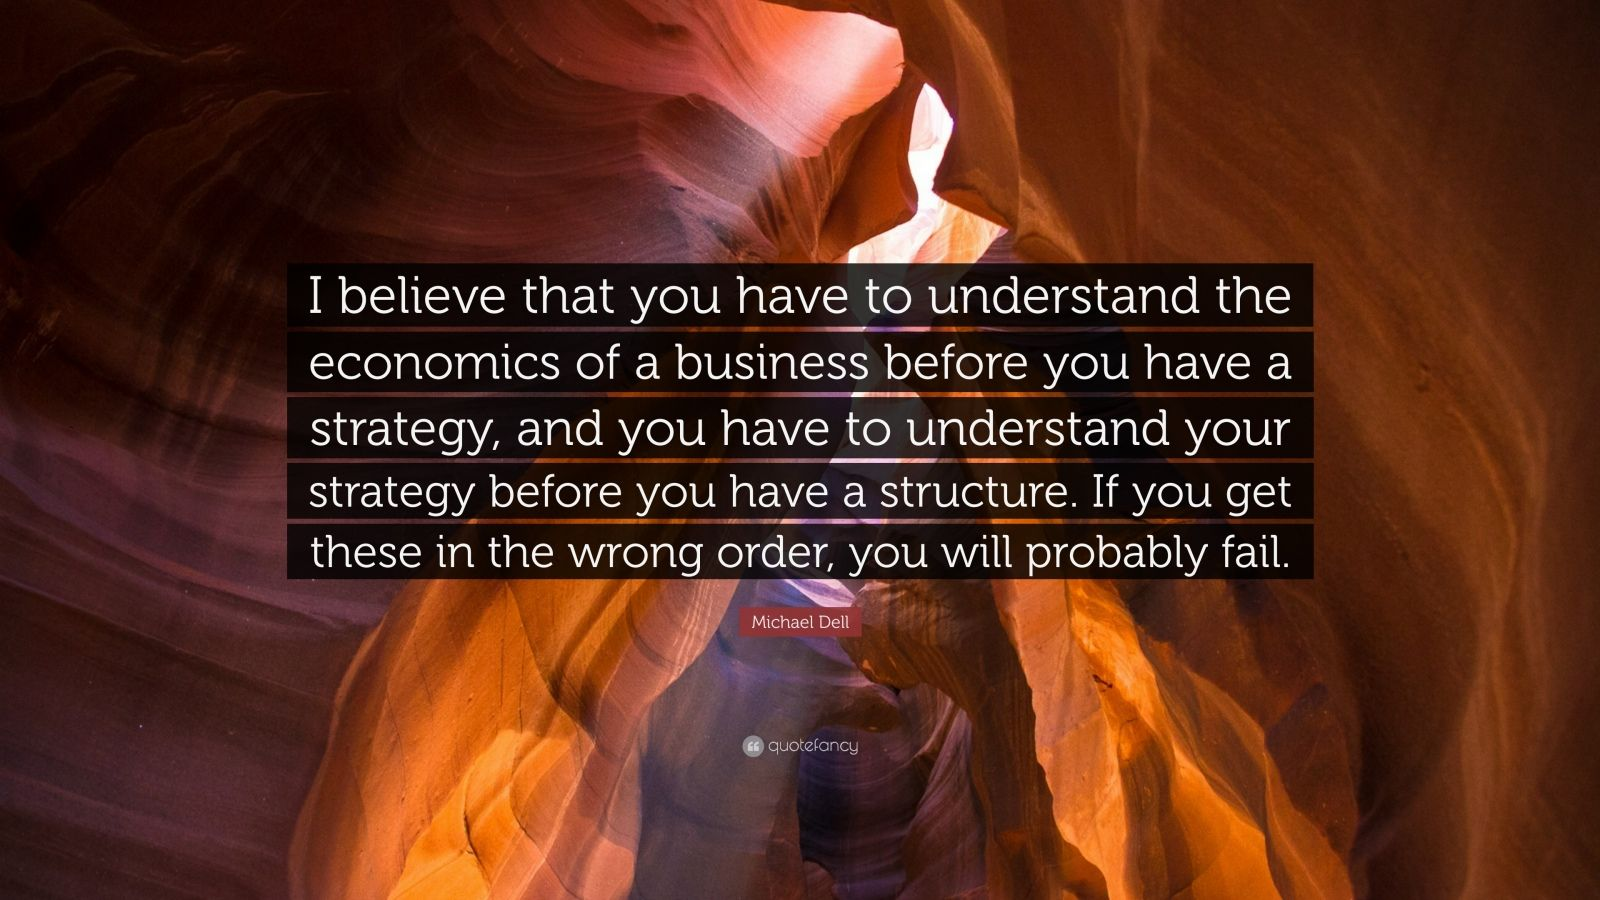 "Michael Dell Quote: ""I believe that you have to understand the economics of a business before you have a strategy, and you have to understand your strategy before you have a structure. If you get these in the wrong order, you will probably fail."""